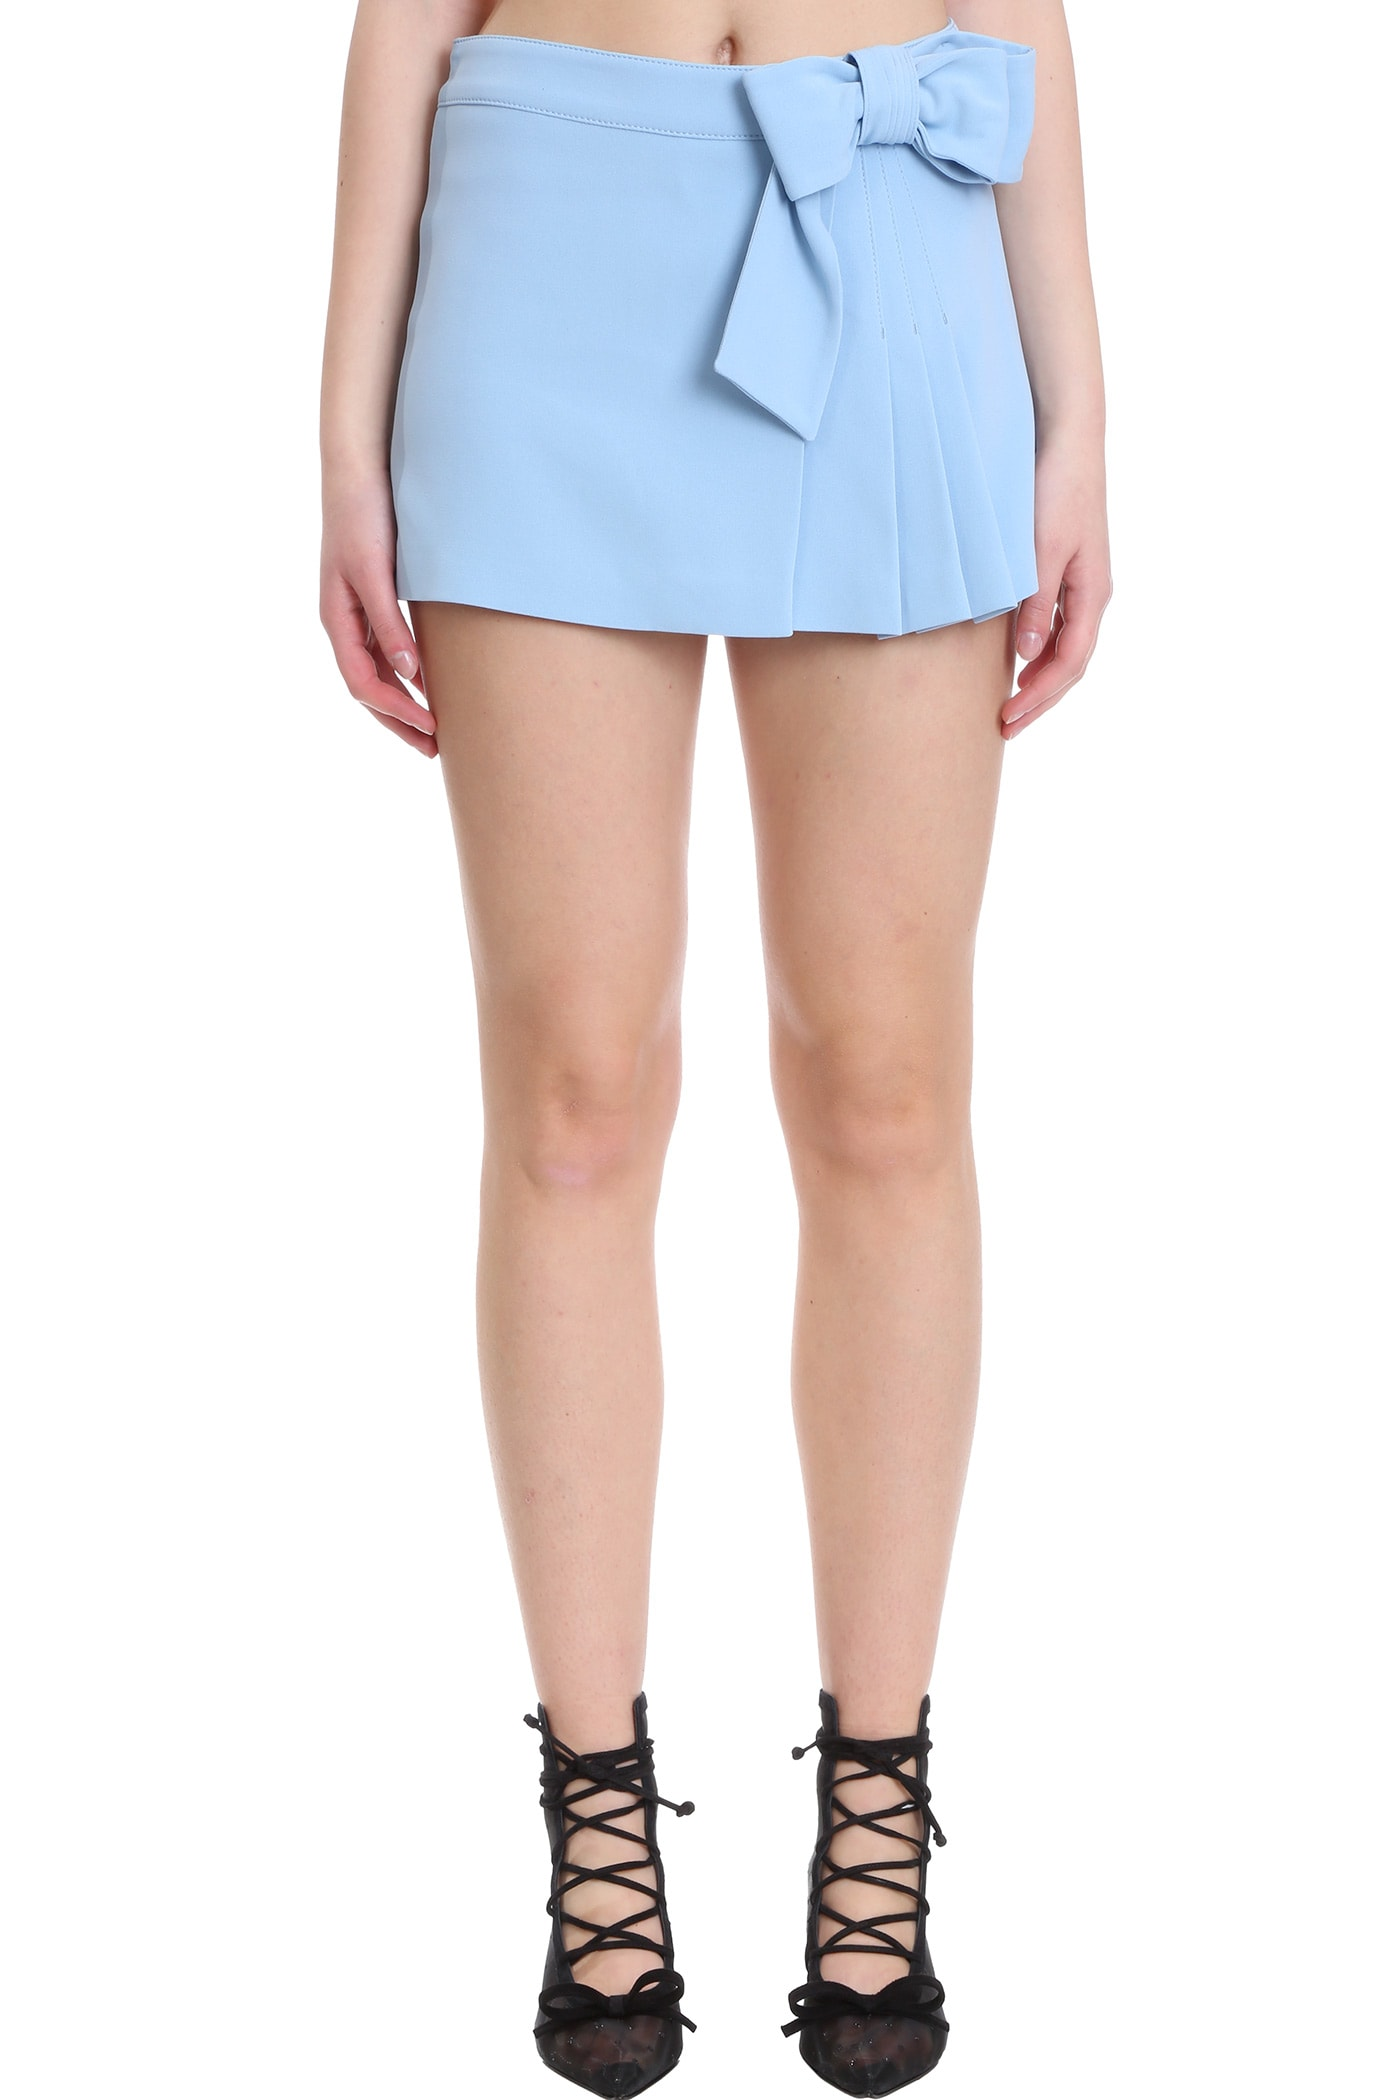 RED Valentino Shorts In Cyan Viscose